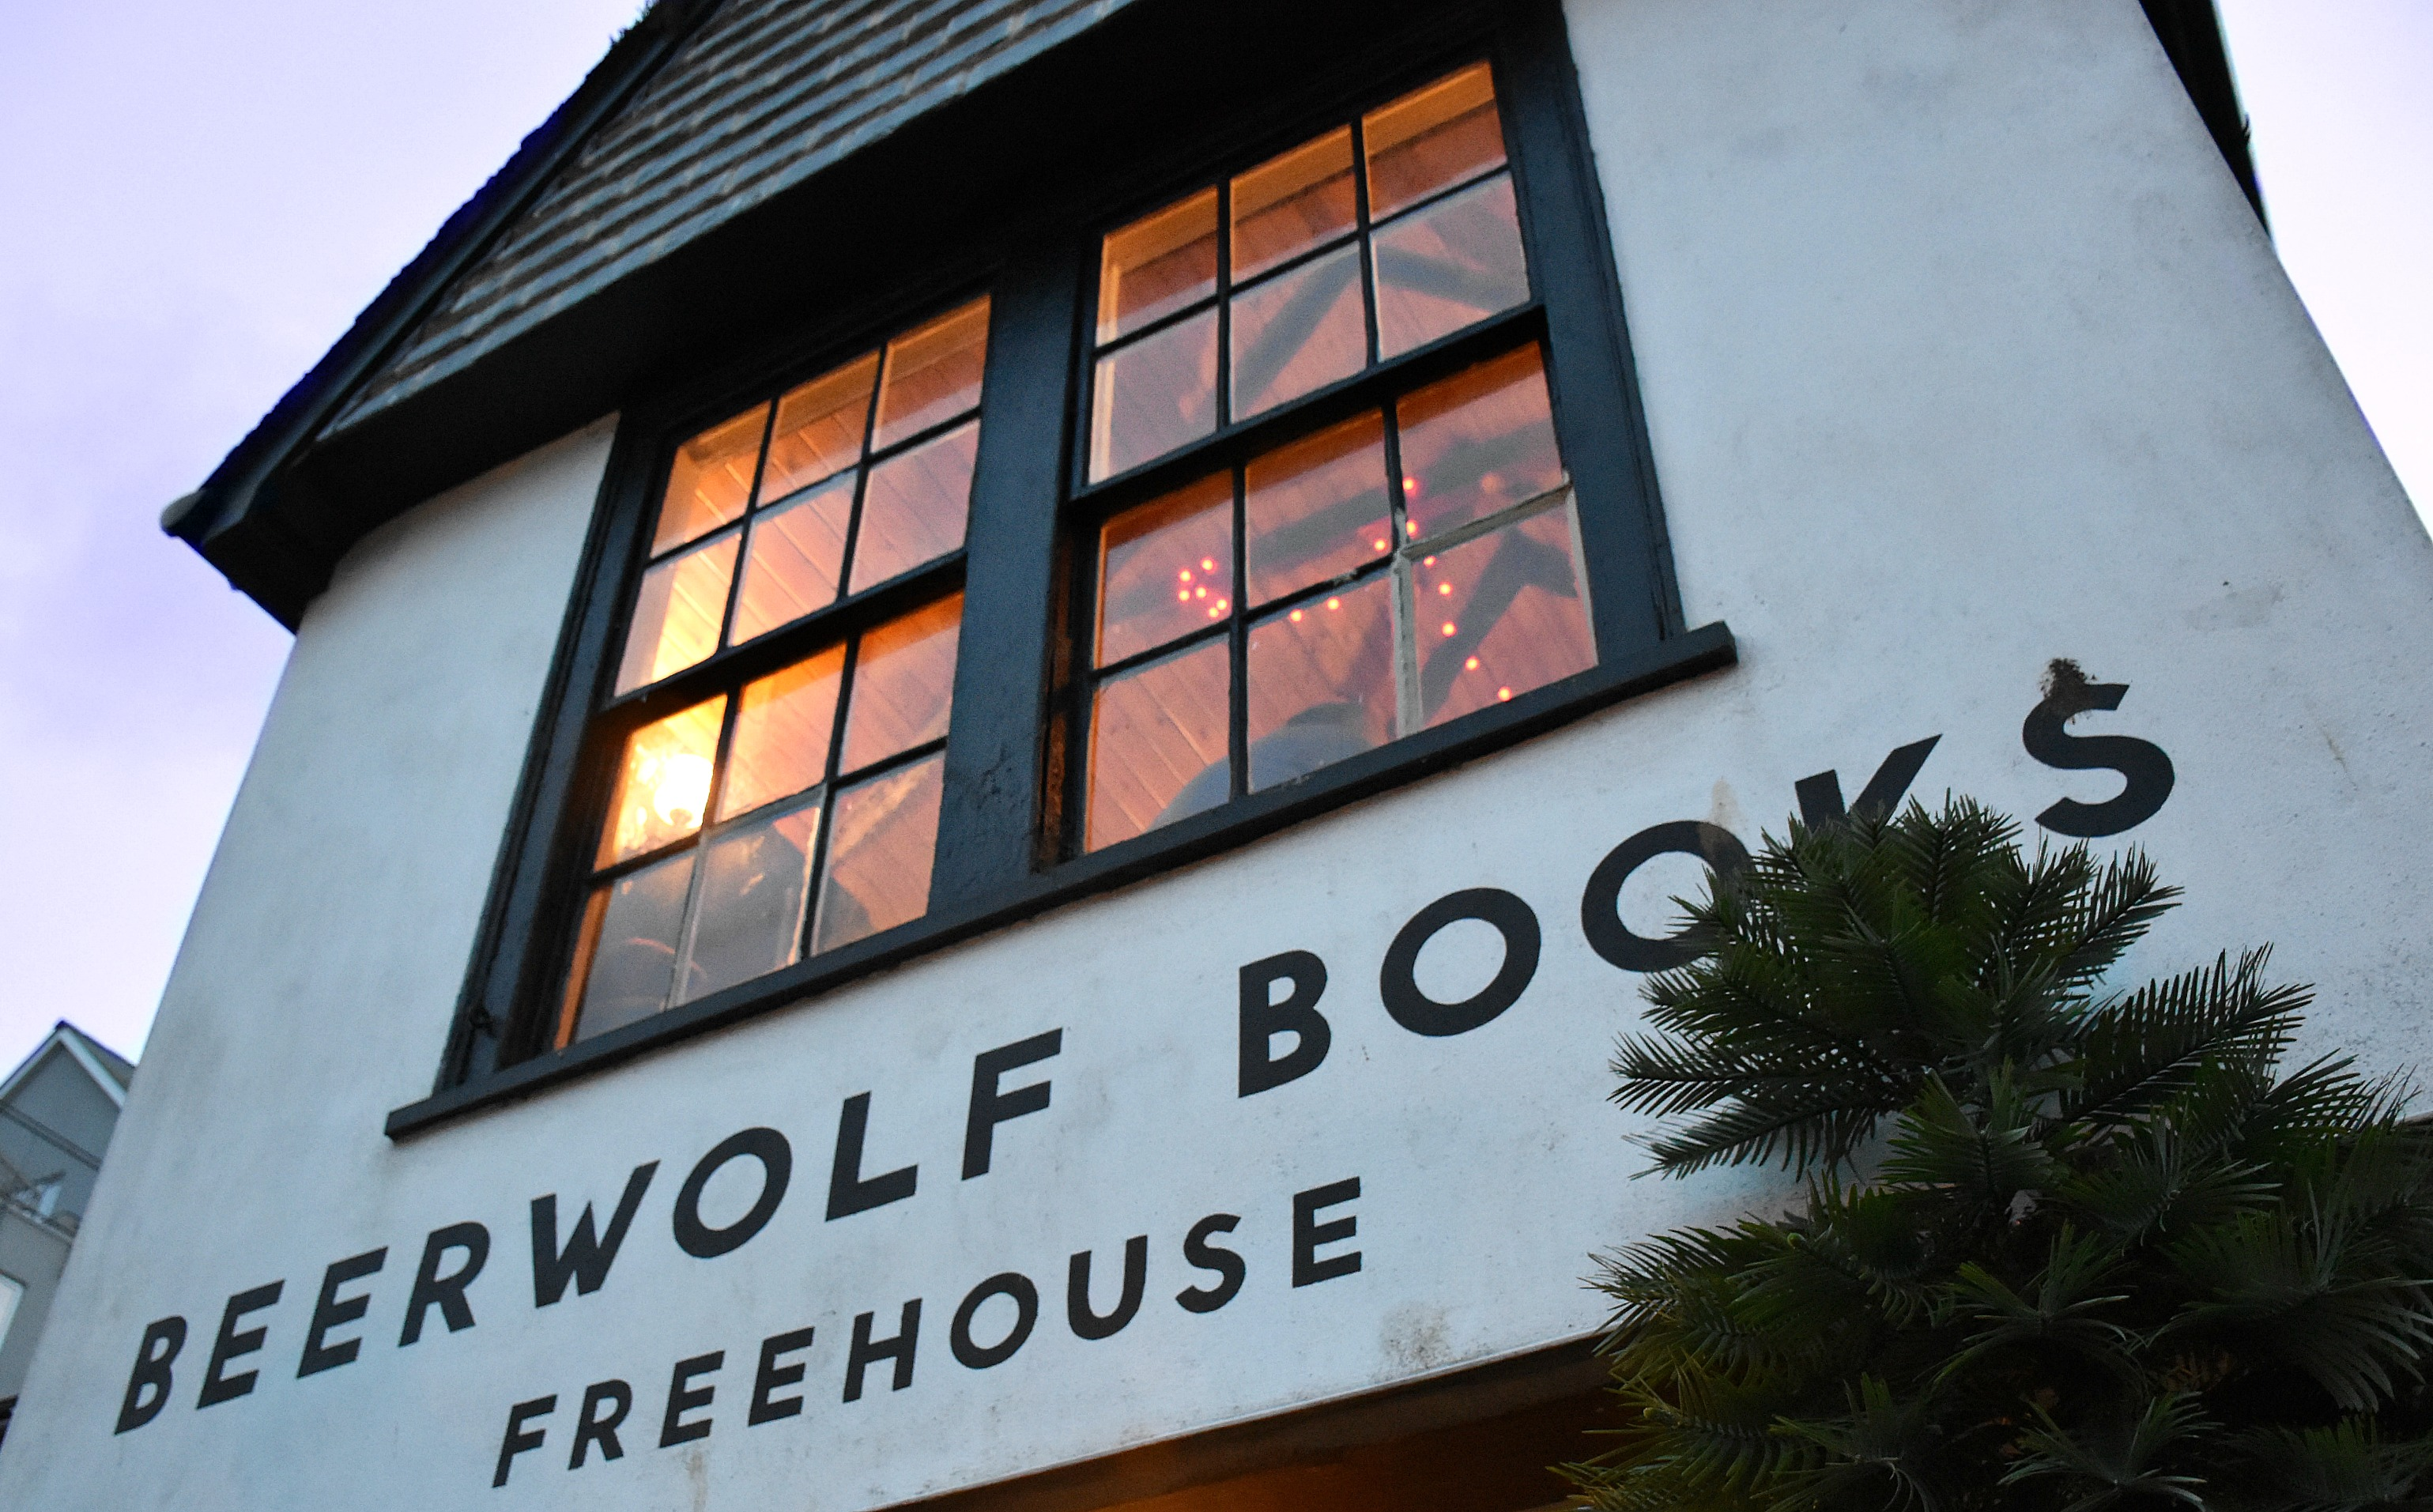 Beer wolf Books Freehouse Project